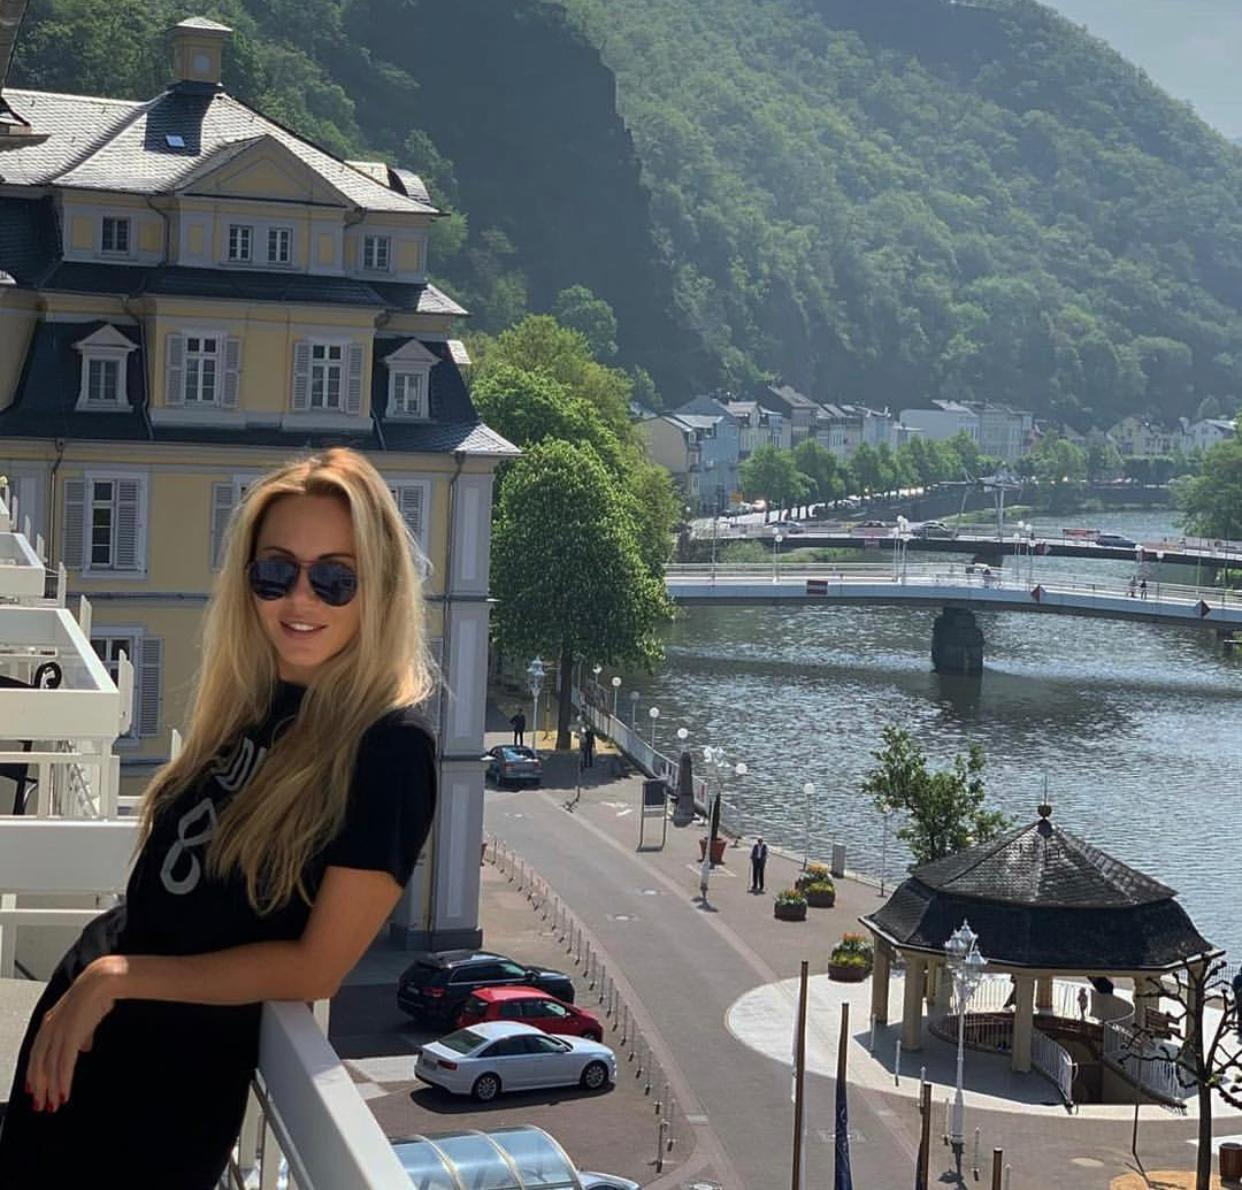 My 10 days detox in Bad Ems! The best place in Europe to balance your body & spirit.